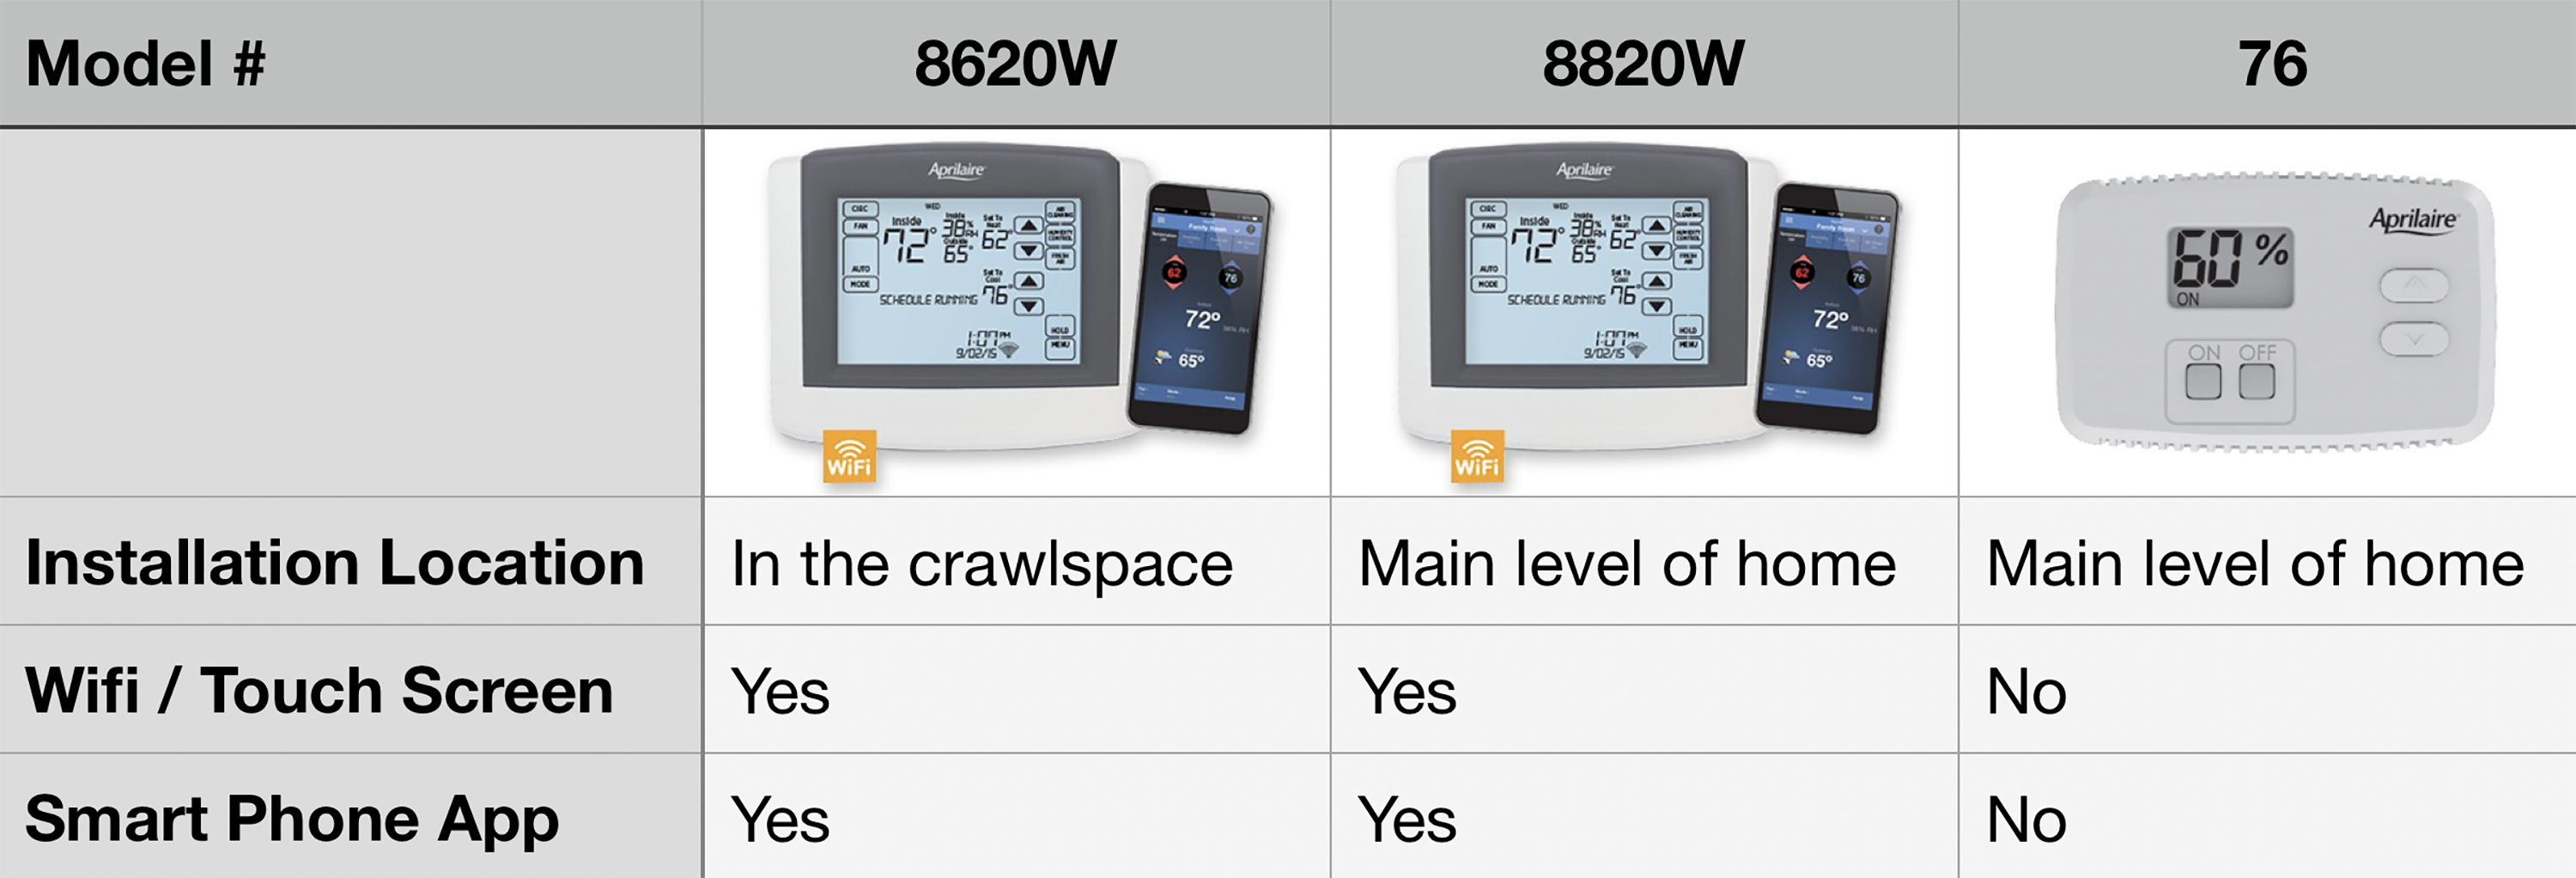 Dehumidifier Controllers Compared